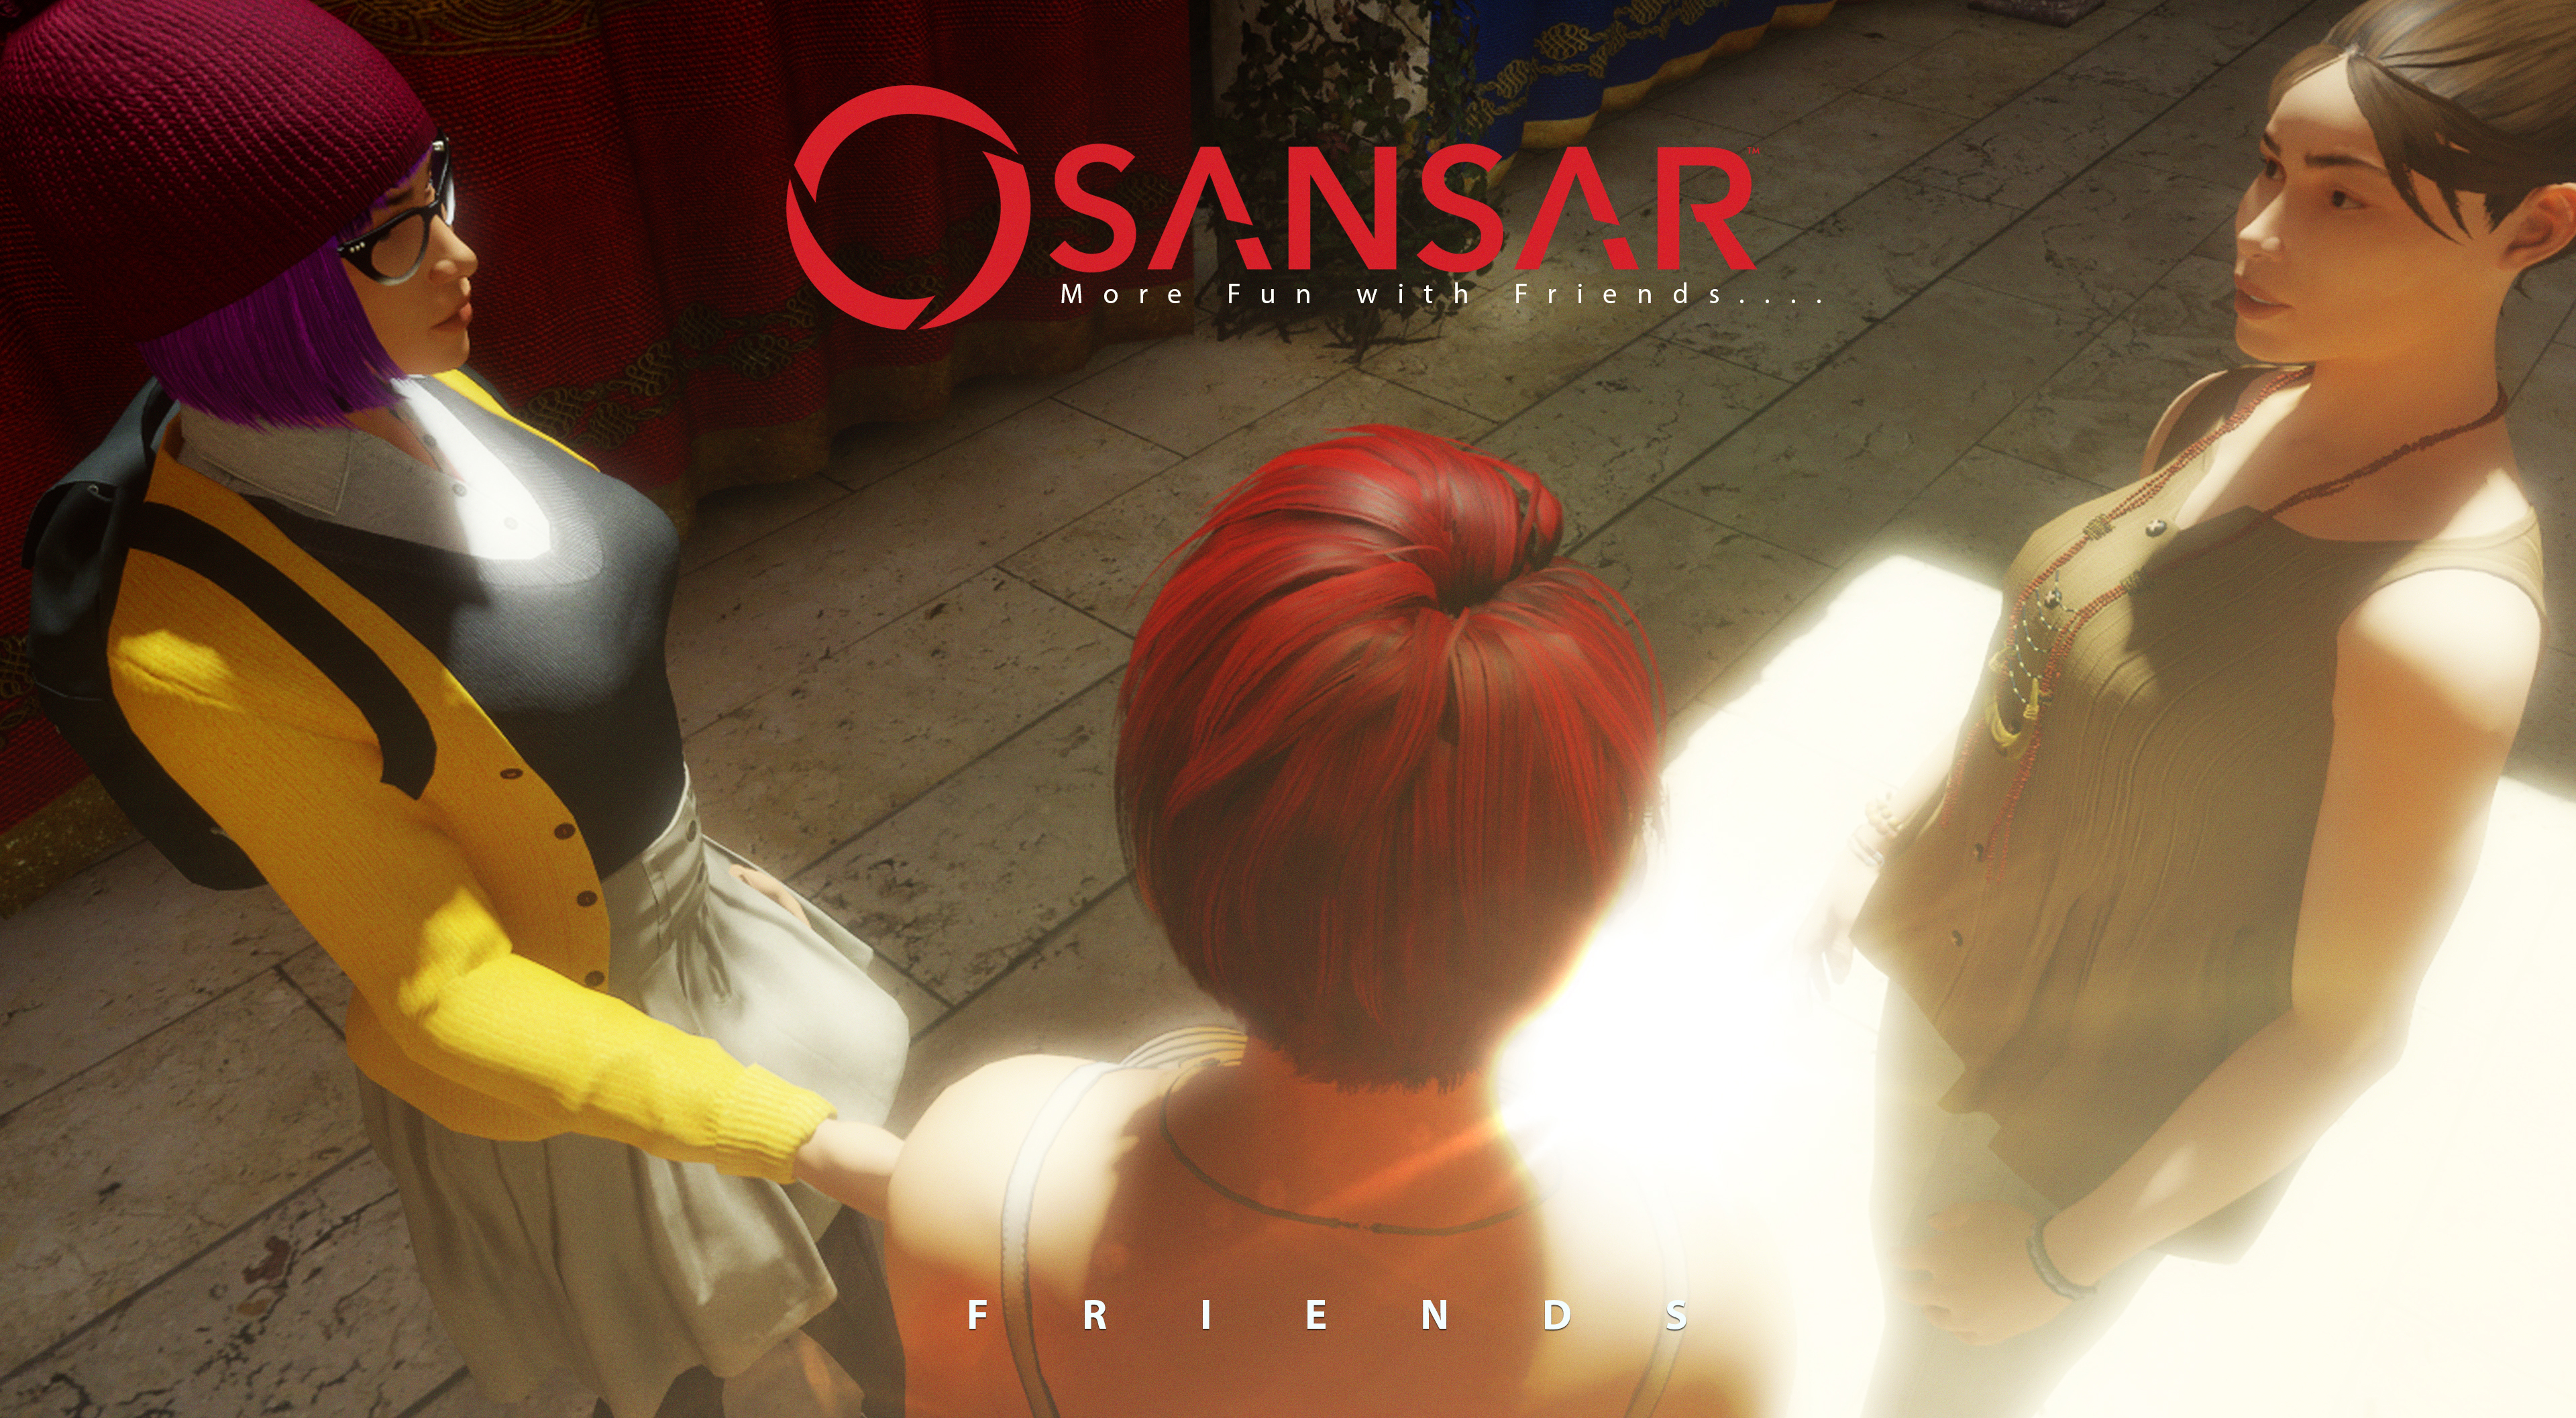 sansar_discovery_poster_friends_text_01a.jpg